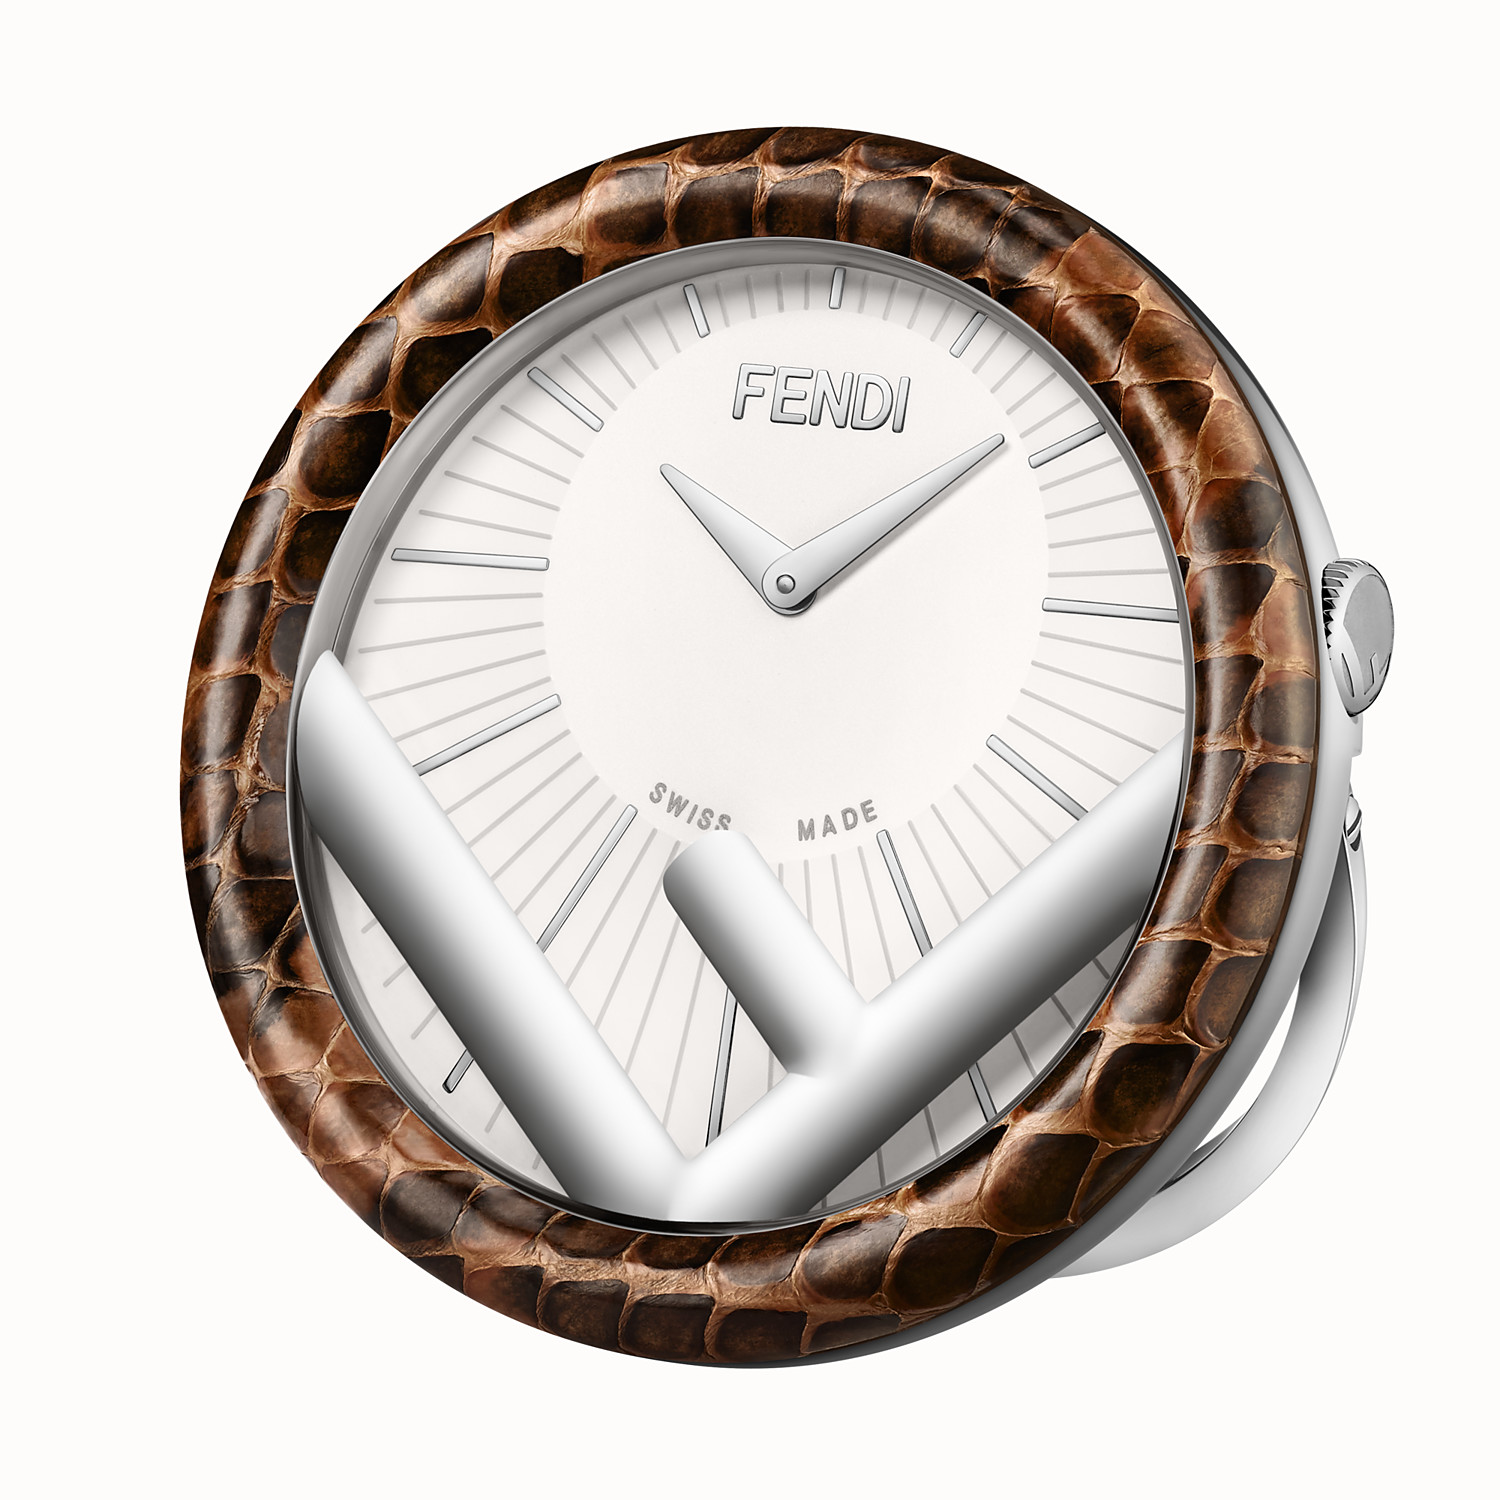 Fendi Run Away Table Clock In Multicolour